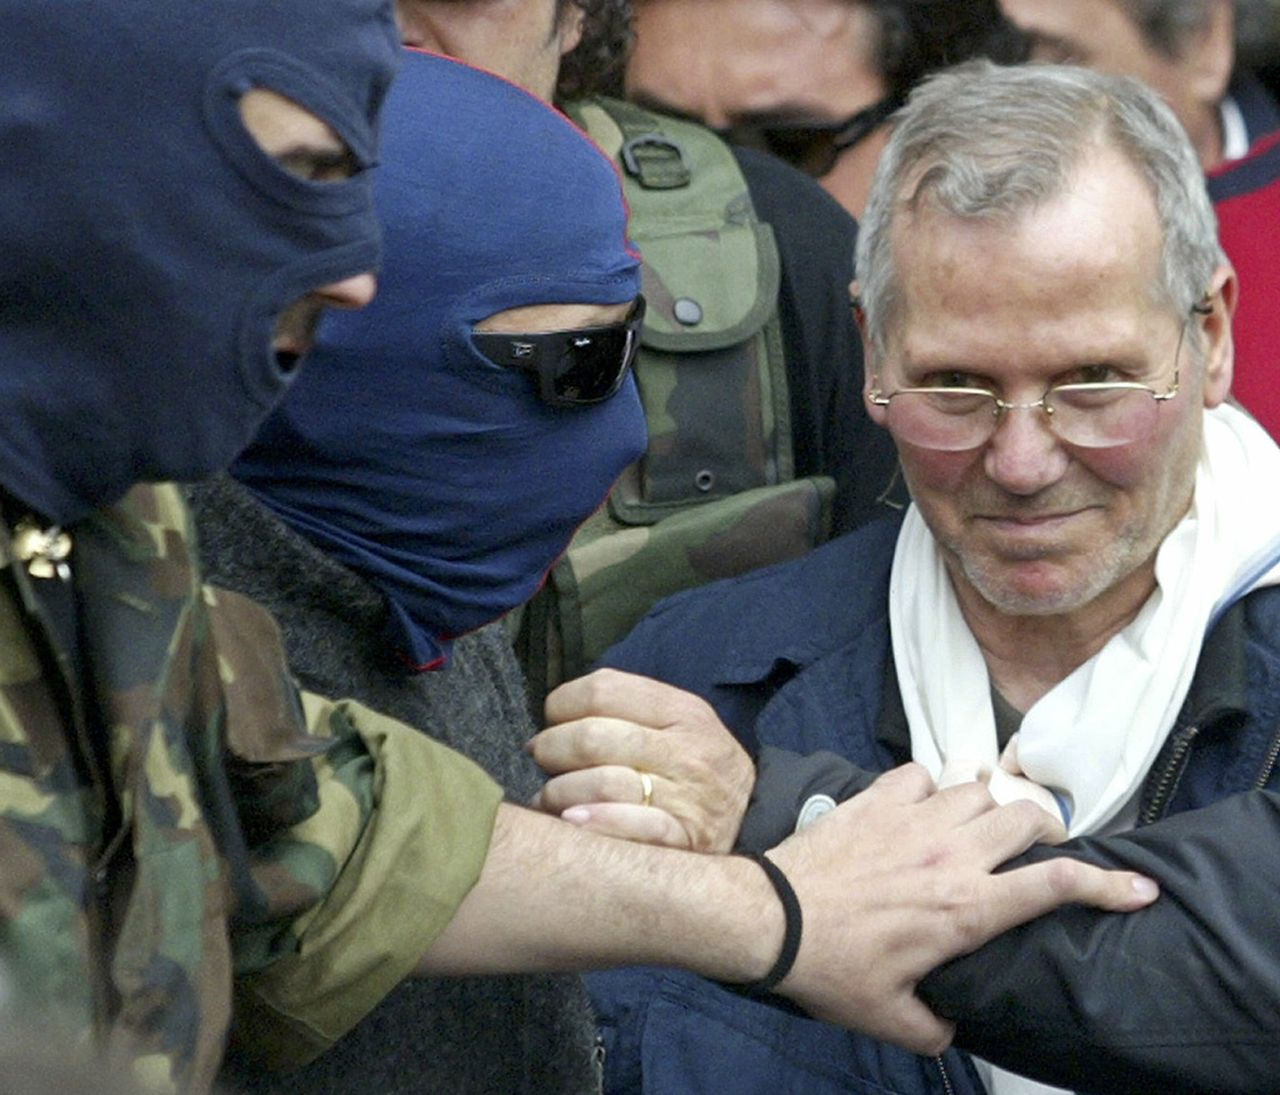 Bernardo Provenzano, die 43 jaar voortvluchtig was, na zijn arrestatie. (Foto Reuters) Italian police officers lead Sicilian Mafia boss Bernardo Provenzano (R) from a police station in the southern city of Palermo April 11, 2006. Provenzano, the undisputed chief of the Sicilian Mafia who had been on the run for more than four decades, was arrested while hiding in a farmhouse near Corleone in Sicily on Tuesday, officials said. REUTERS/Marcello Paternostro